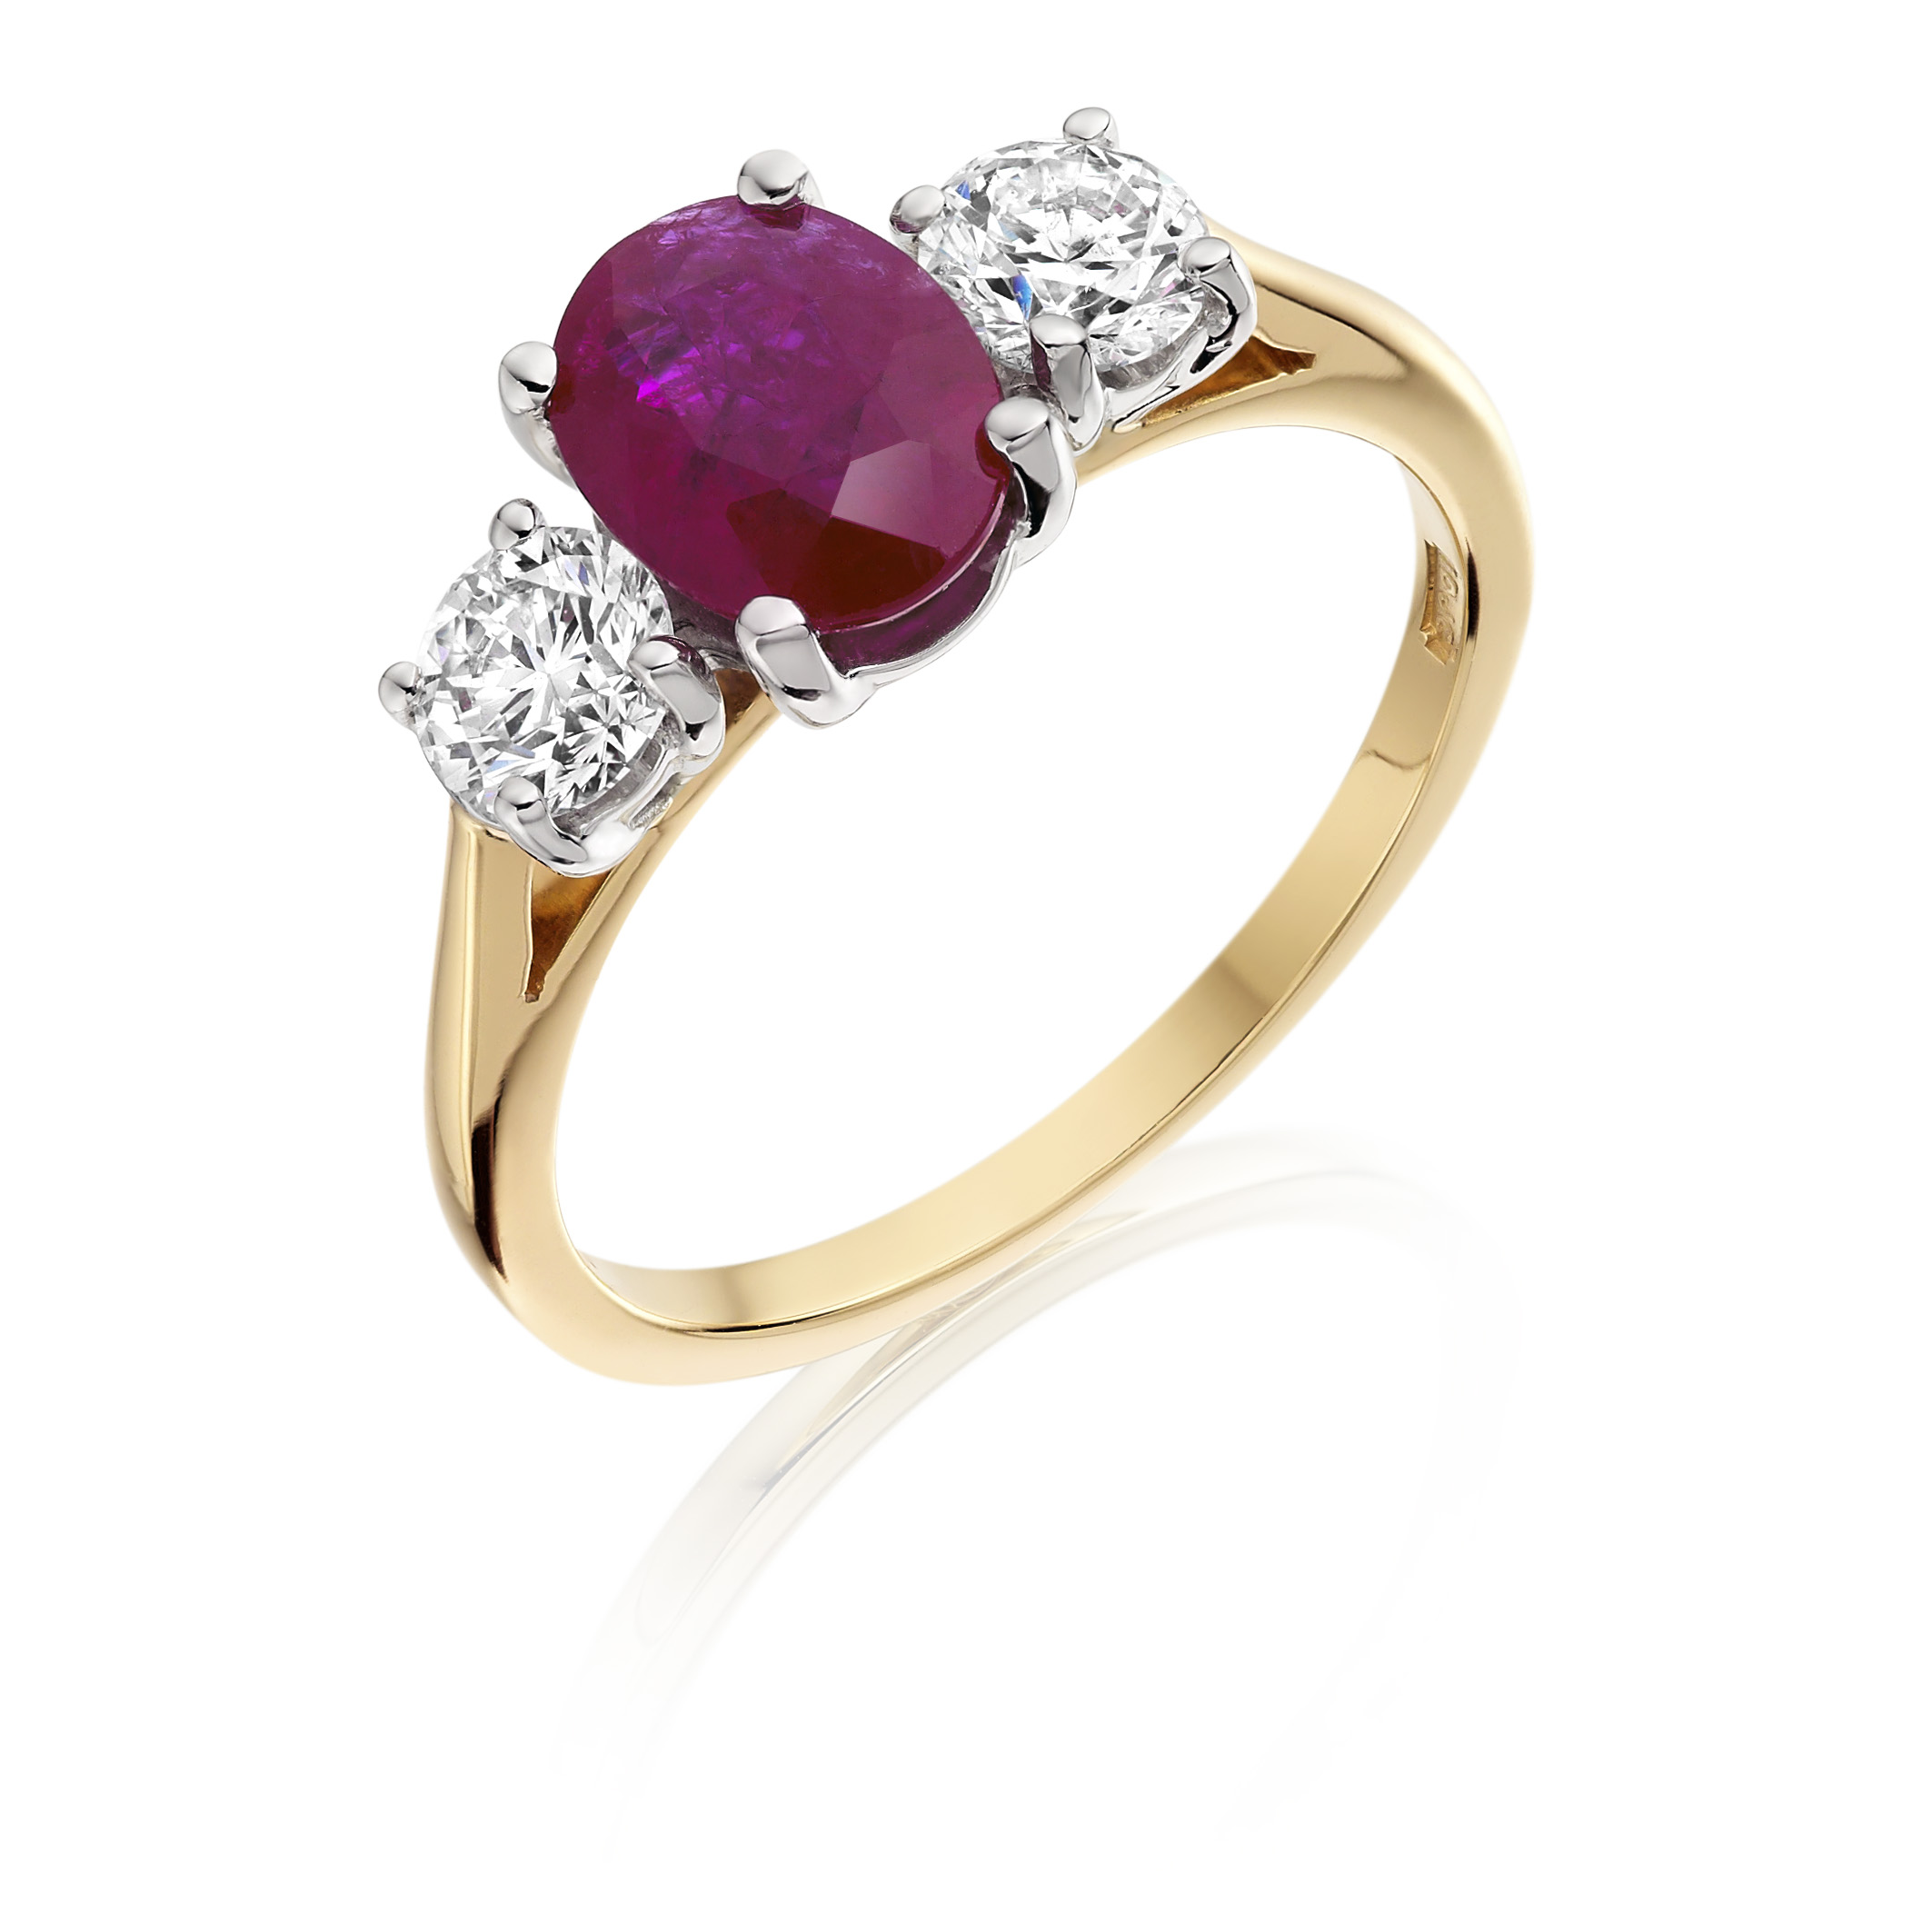 christie diamond an lot rings red ring lotfinder extraordinary ruby diam details s hgk and